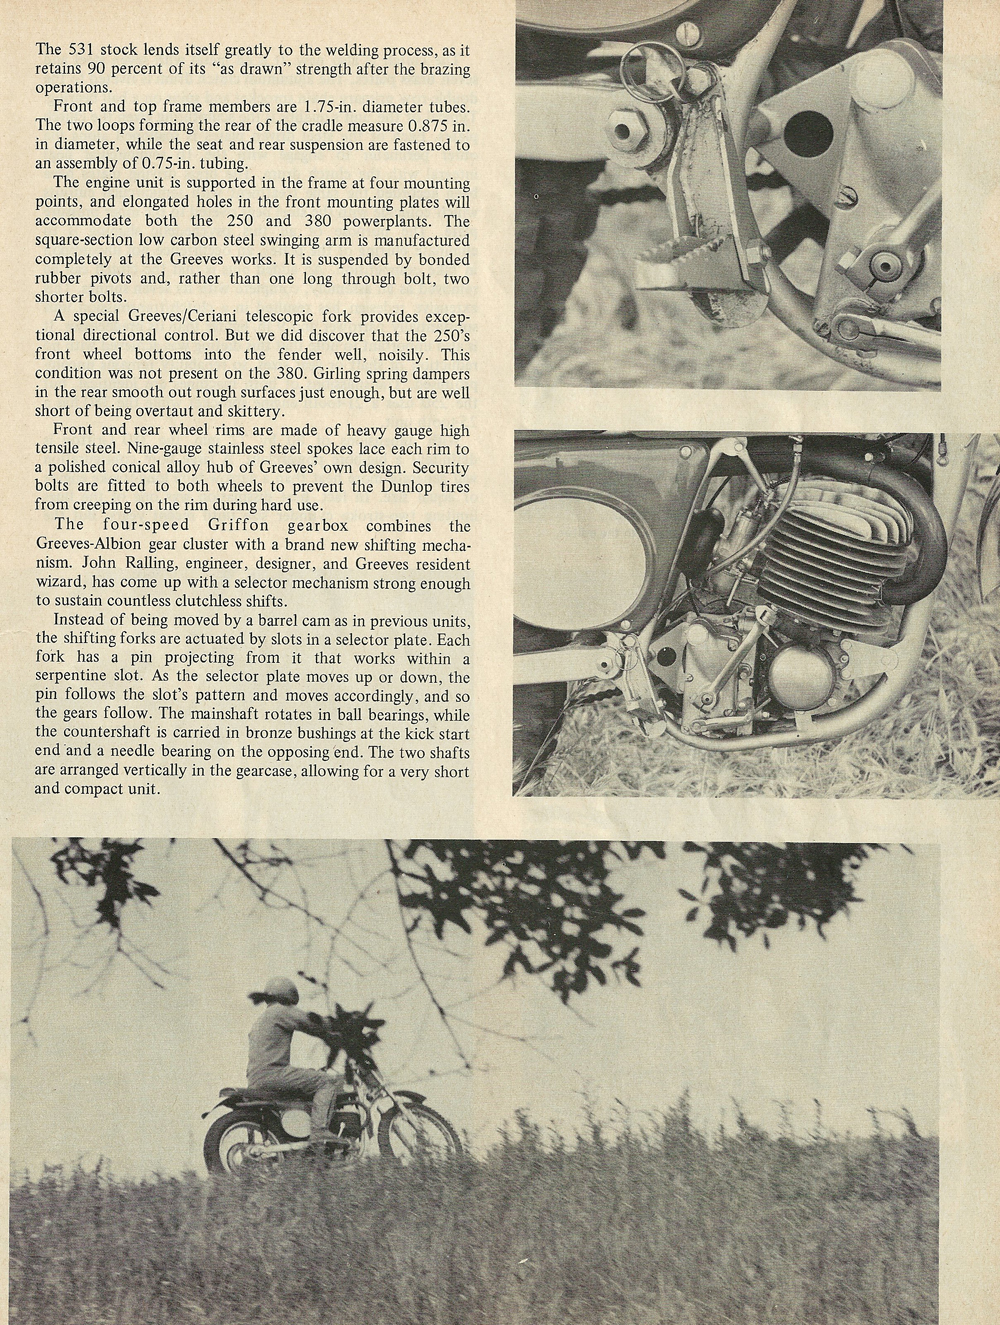 1969 Greeves Griffon 380 and 250 road test 2.jpg